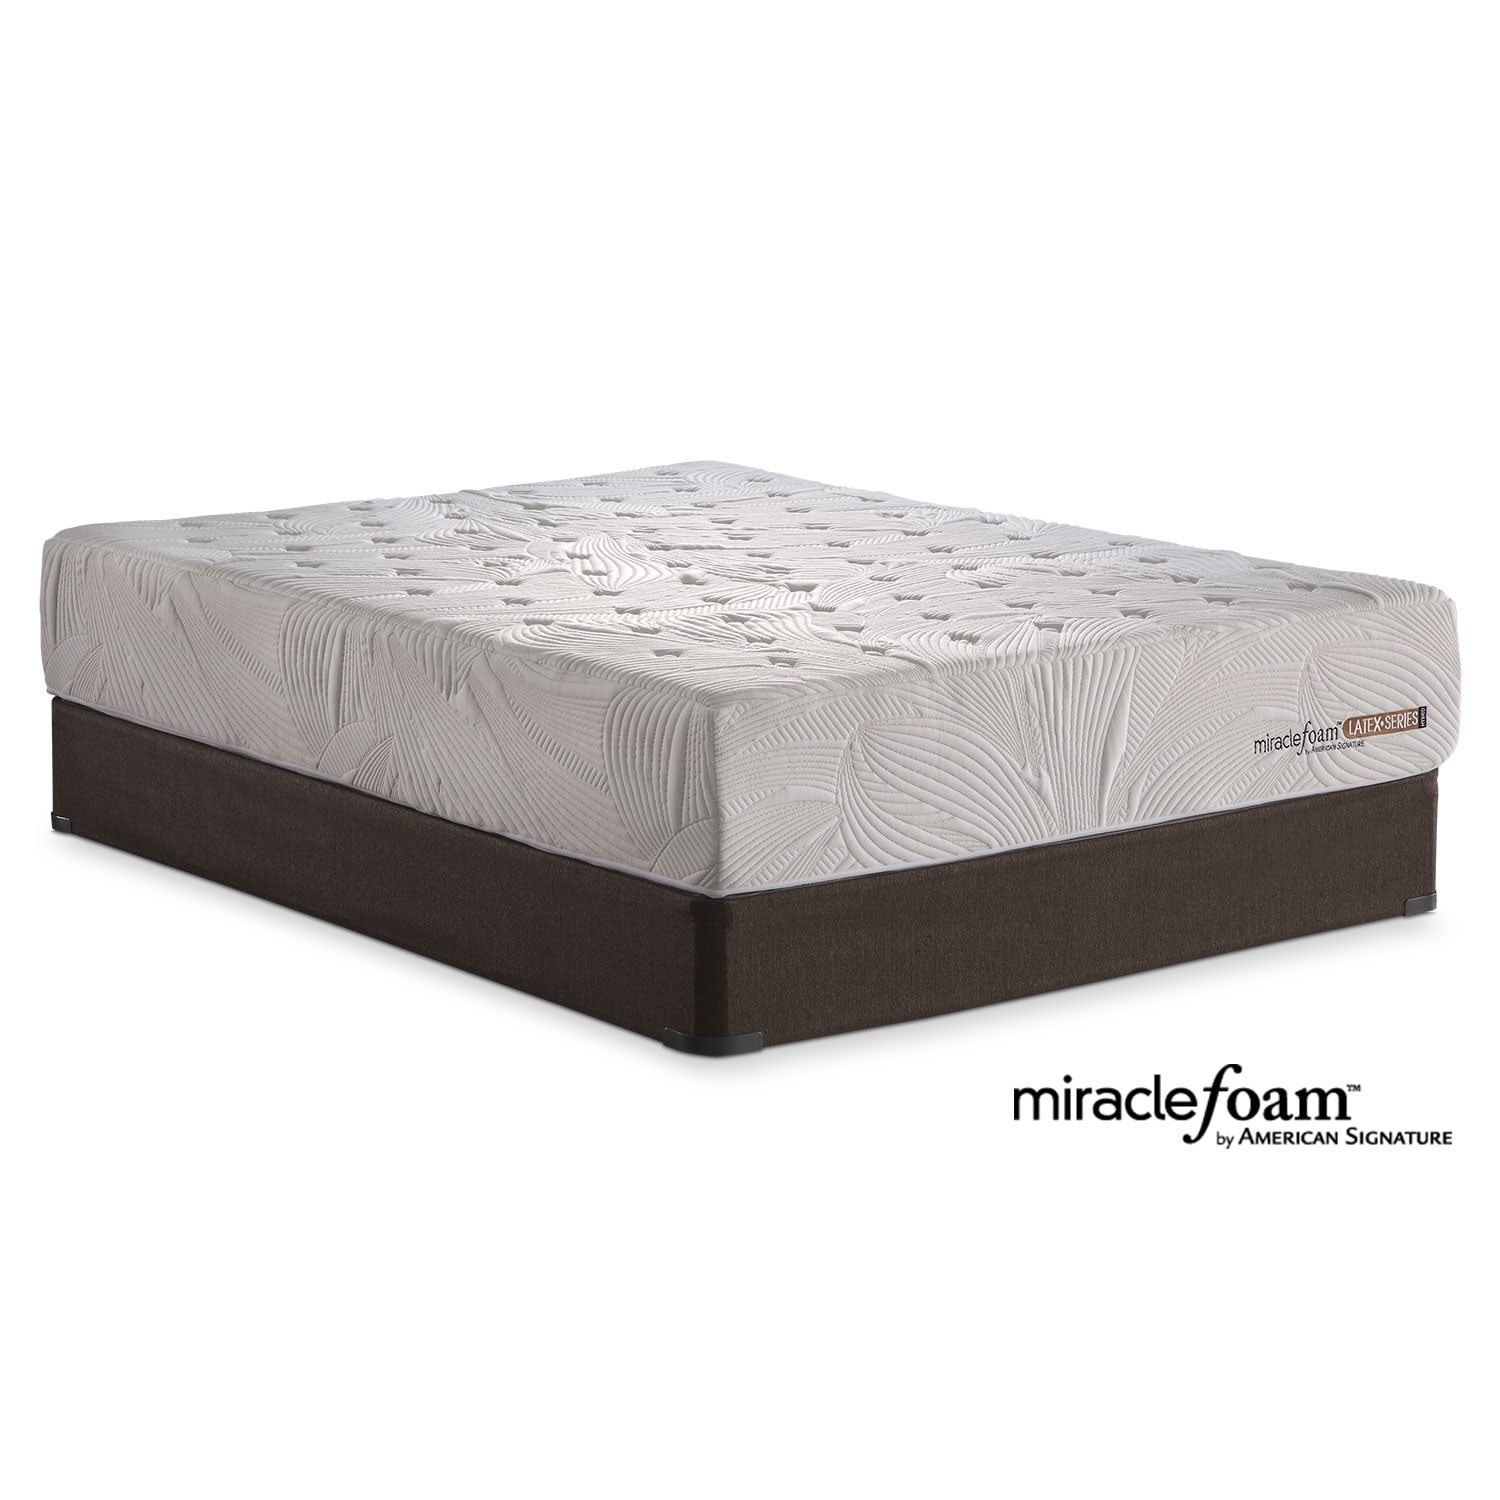 Mattresses and Bedding - Bliss Queen Mattress/Foundation Set